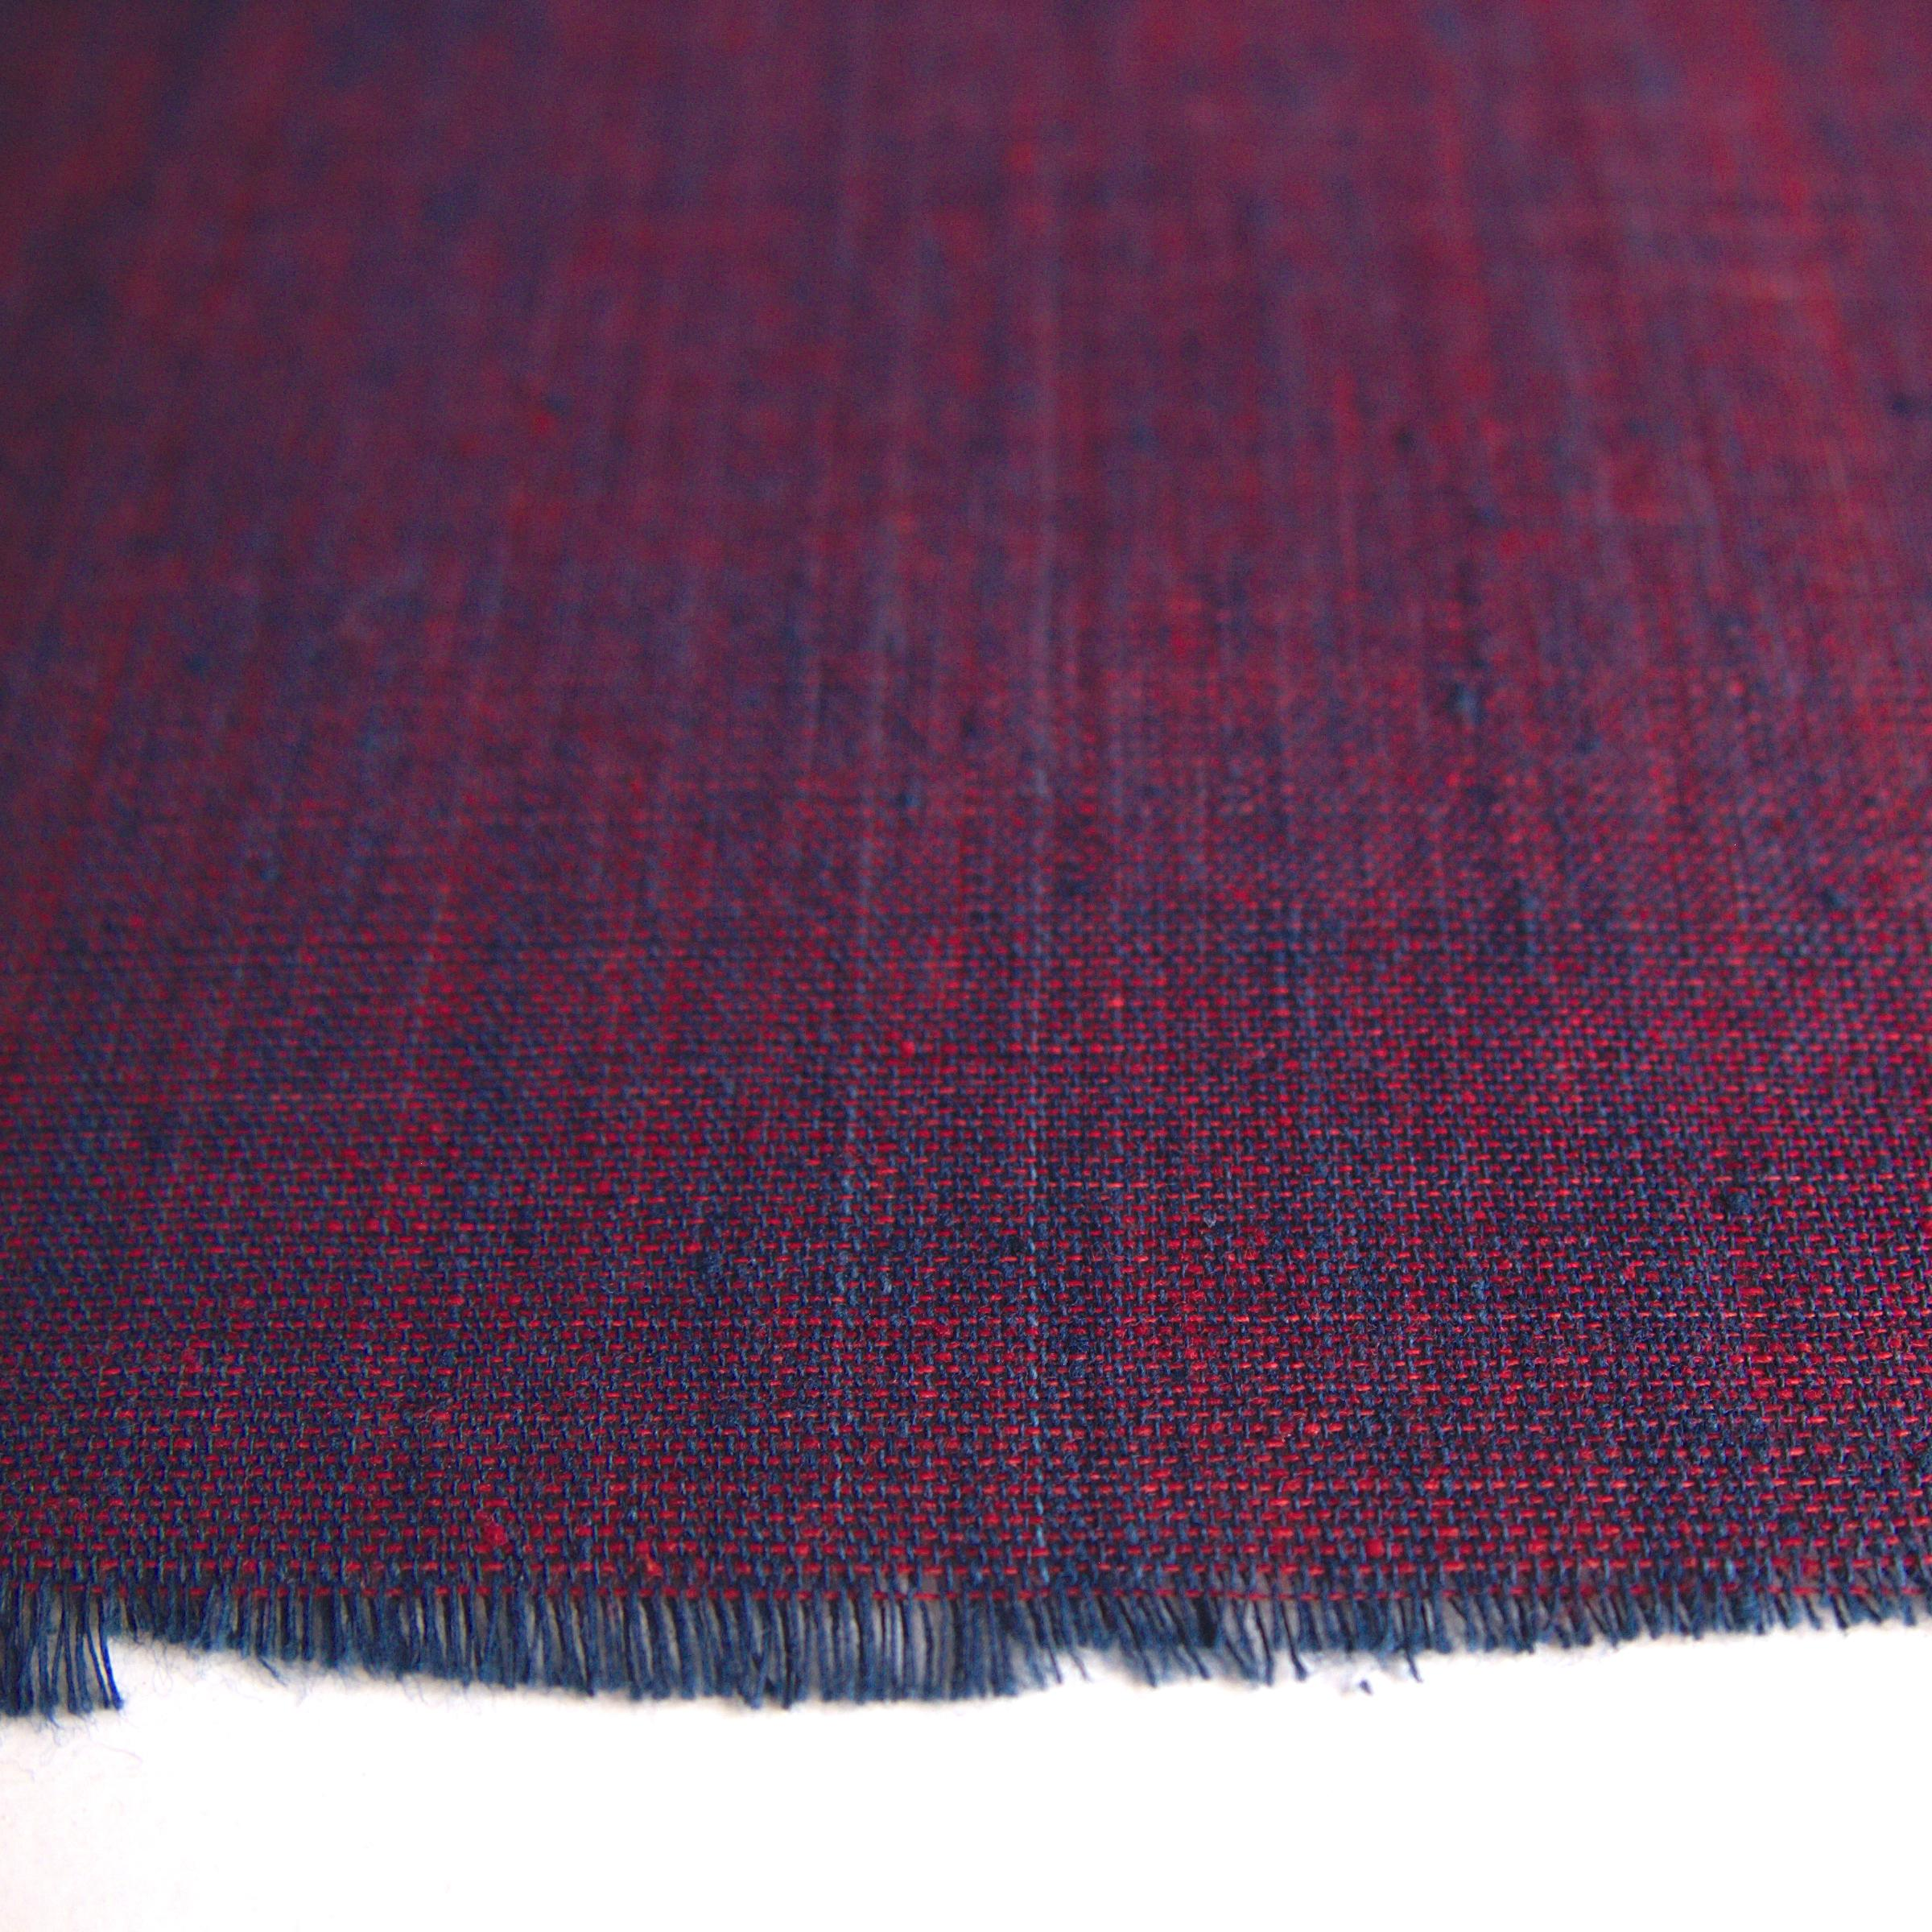 100 % Handloom Woven Cotton - Cross Colour - Natural Indigo Warp, Red Alizarin Weft - Cross Colour - Close Up